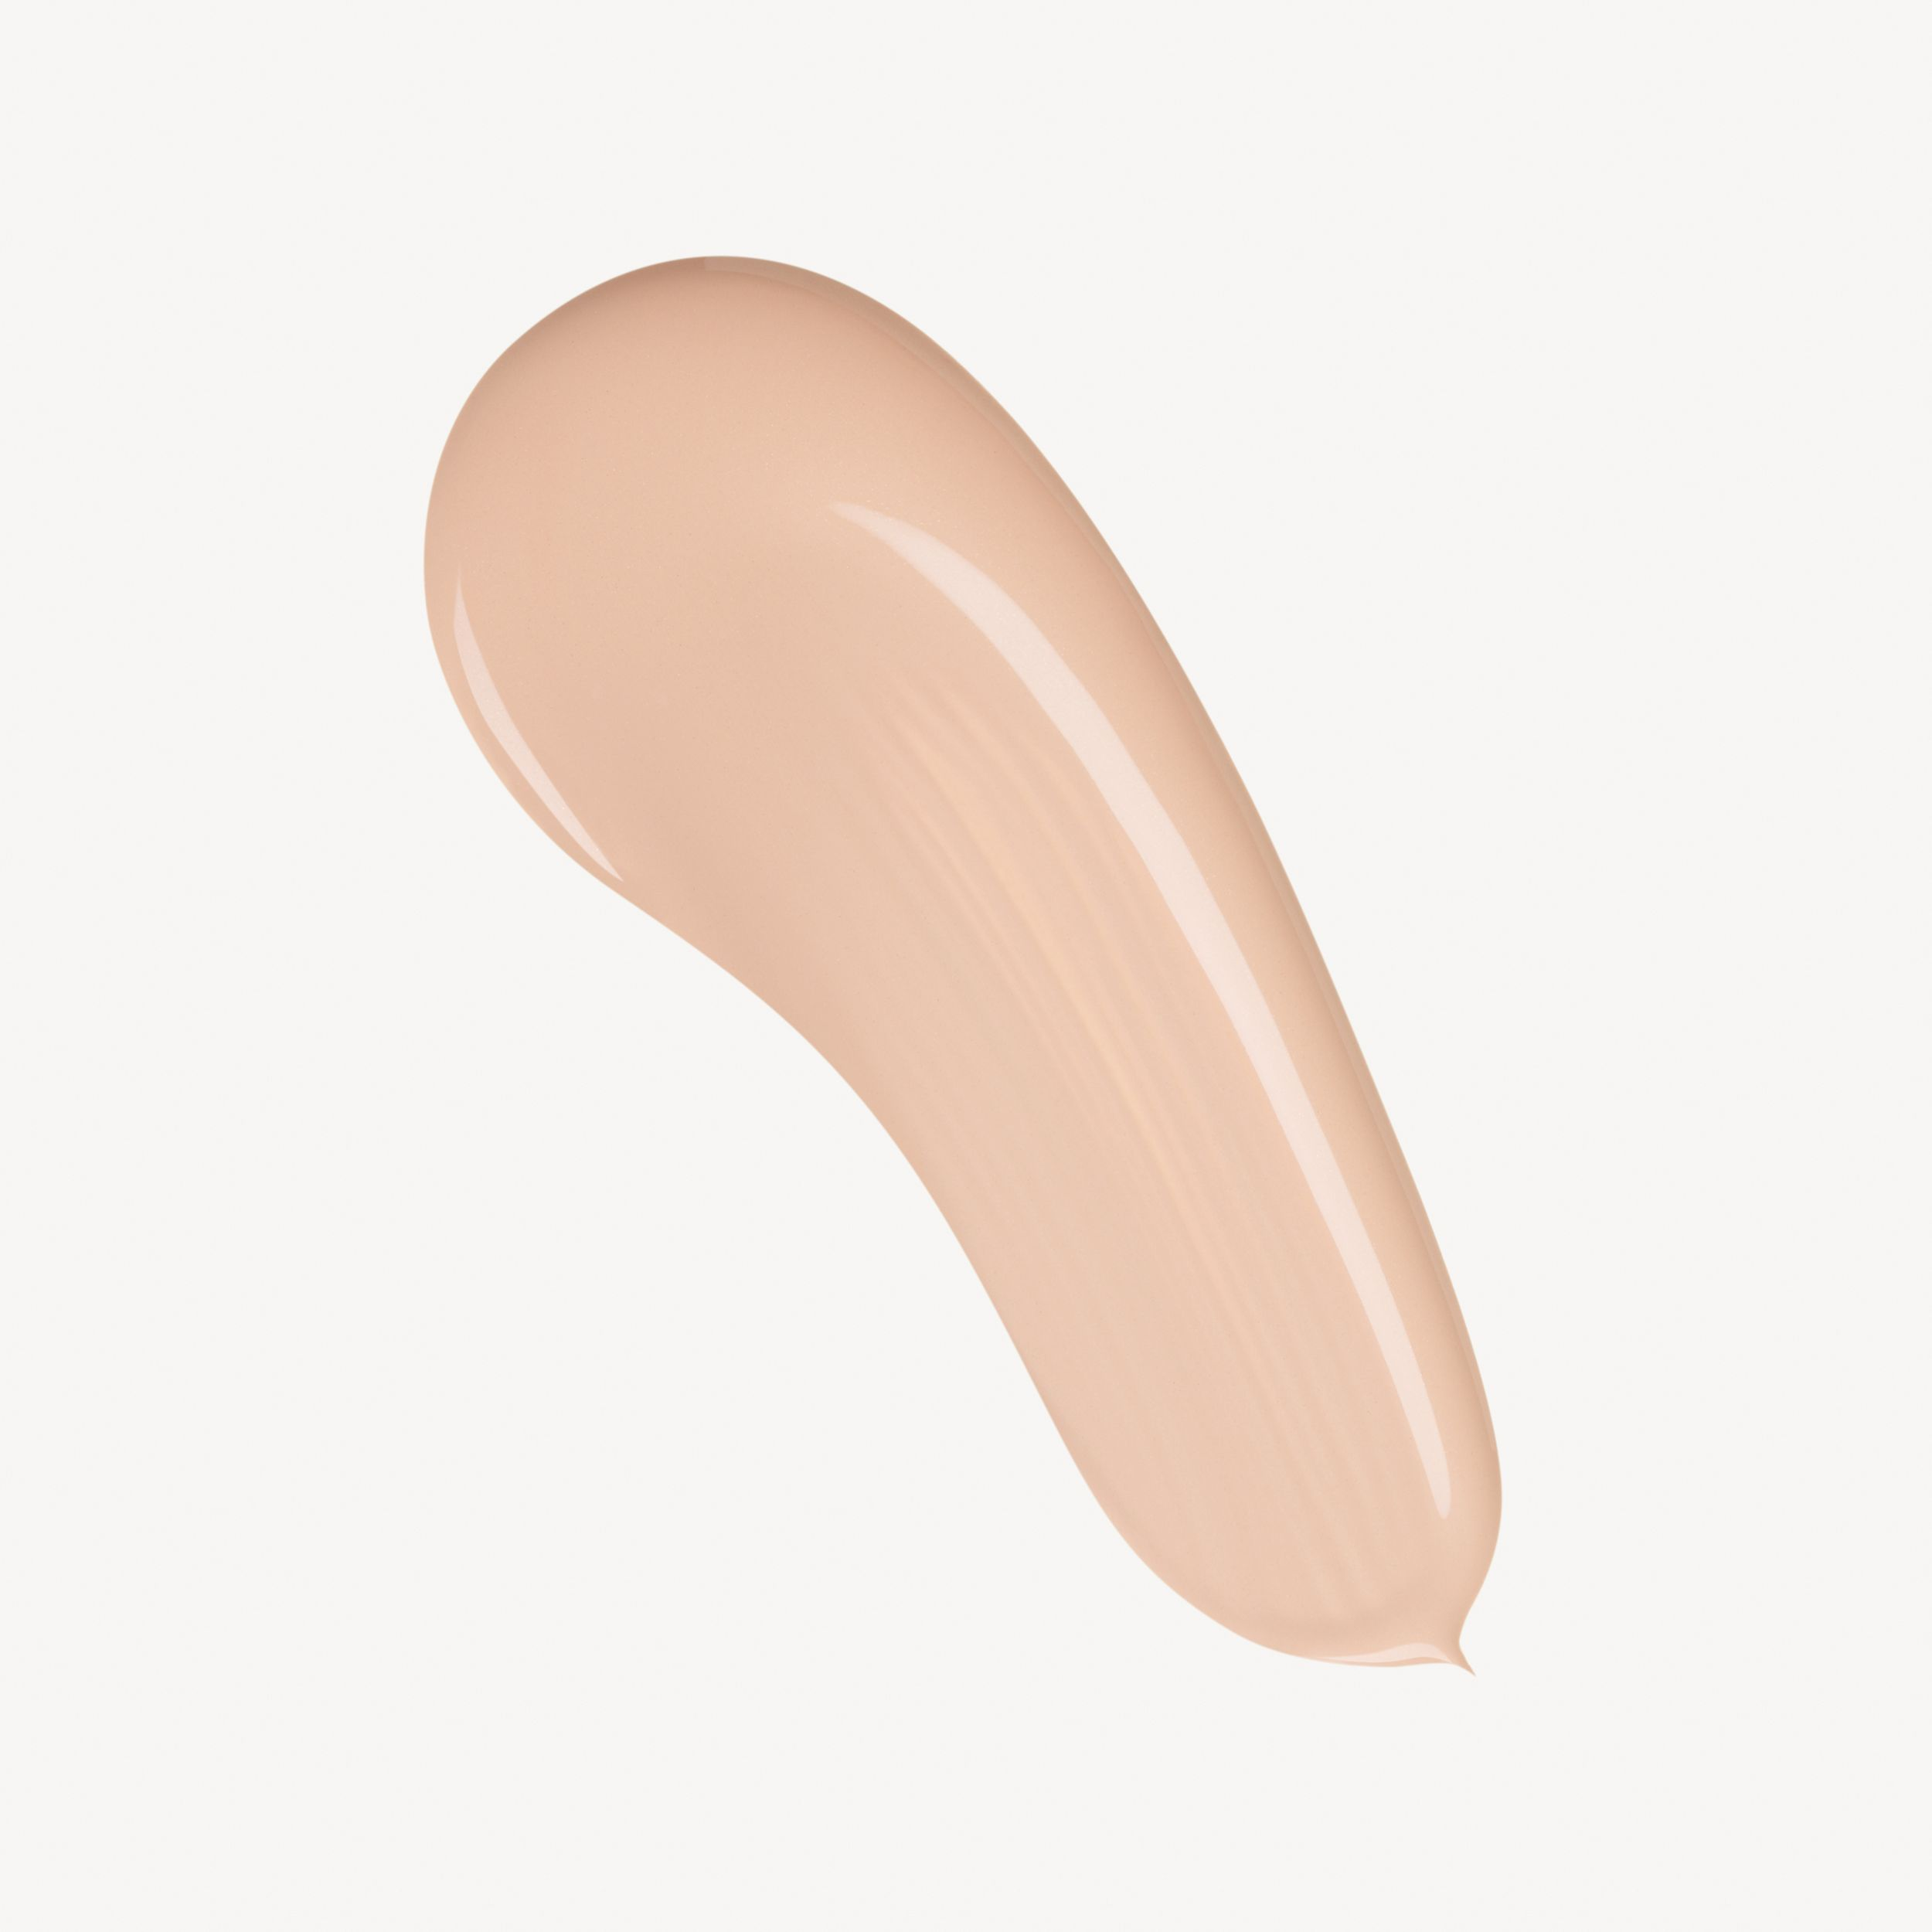 Base de maquillaje Fresh Glow FPS 15, PA+++ – Porcelain No.11 - Mujer | Burberry - 2